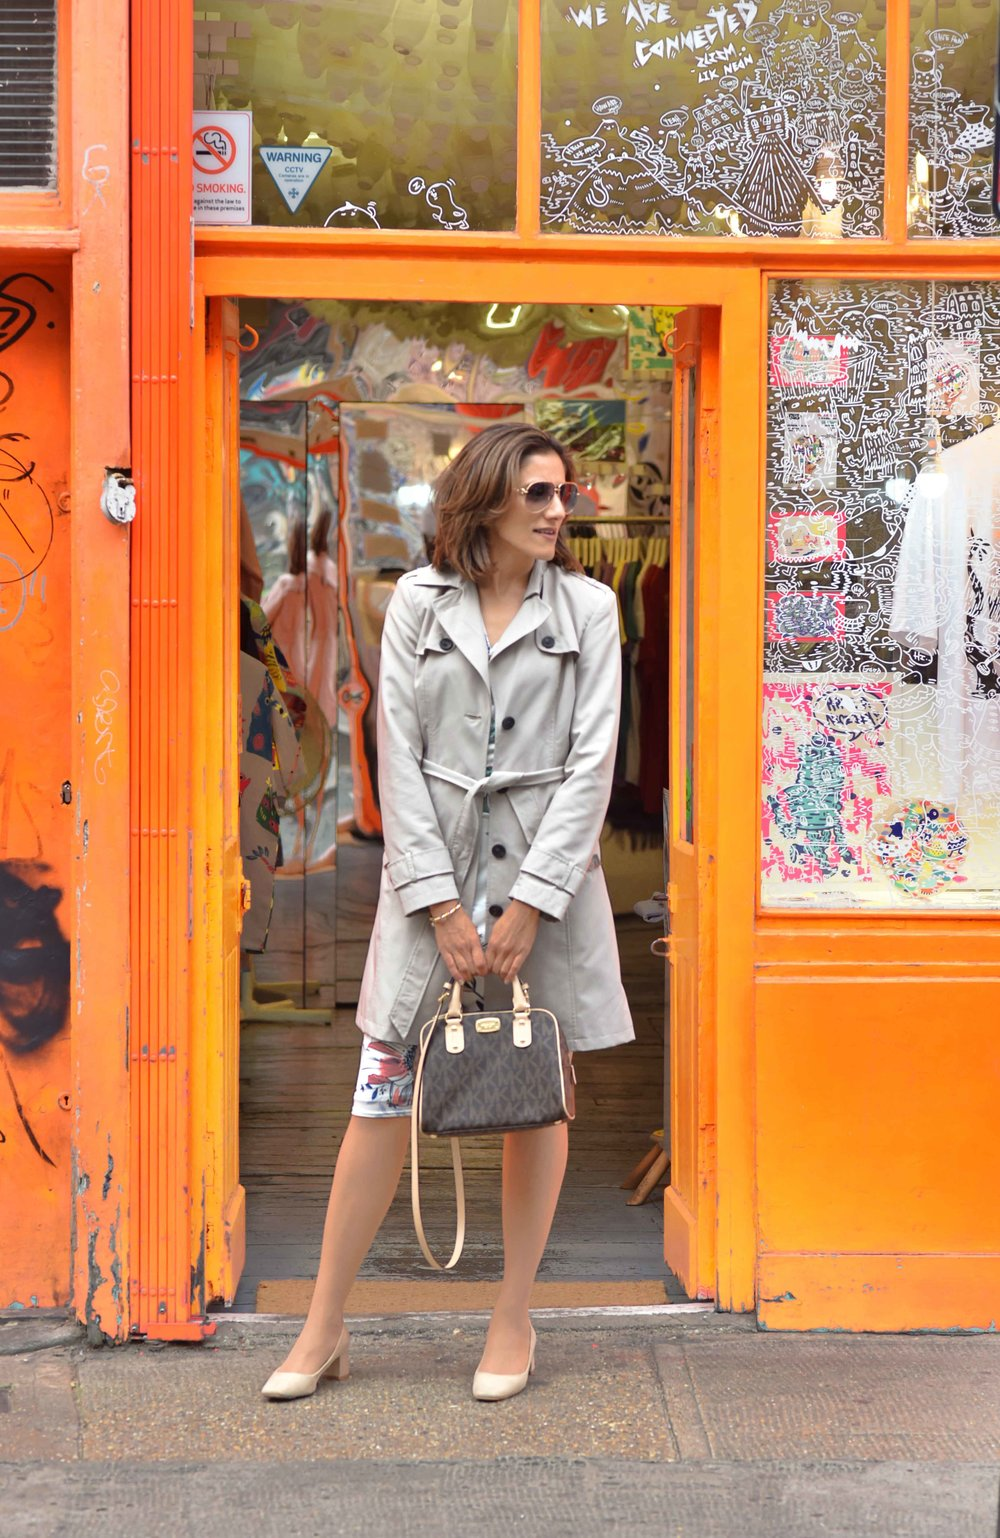 Marks and Spencer shift dress, Marks and Spencer trench, Gucci sunglasses, Michael Kors handbag, Zara sandals, Shoreditch, London, U.K. Photo: Nina Shaw, Image©sourcingstyle.com